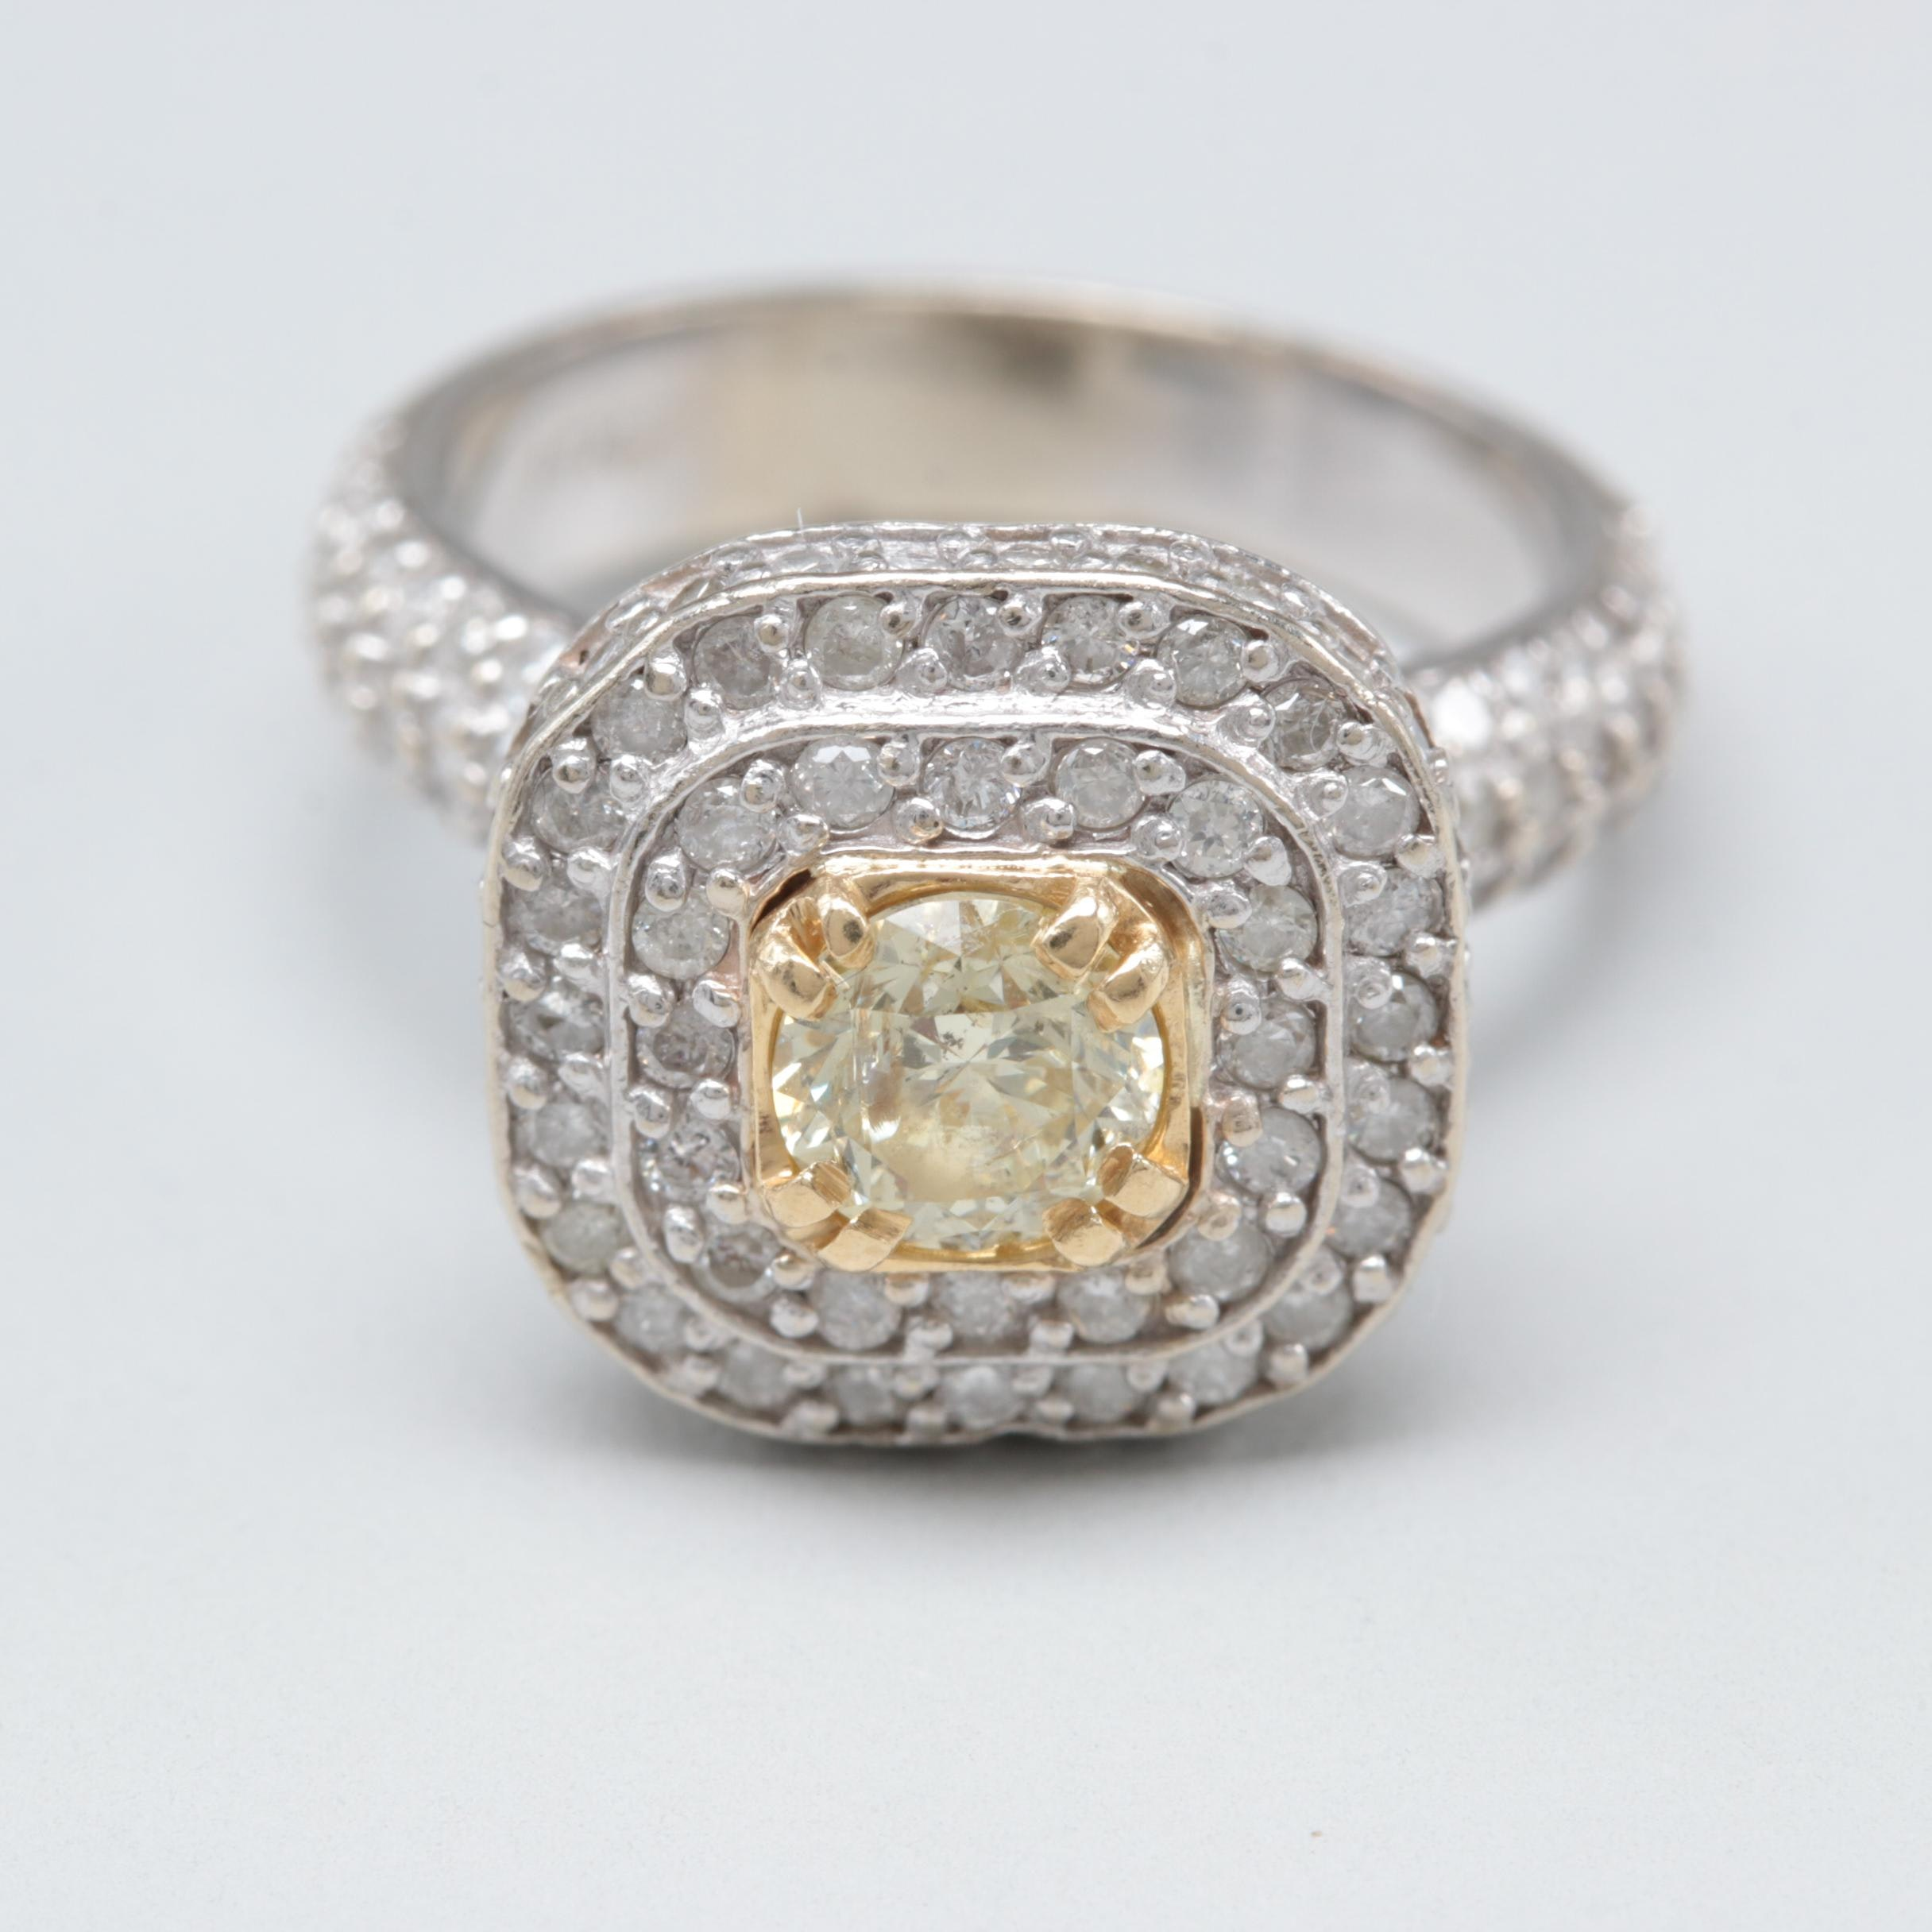 10K White Gold 1.53 CTW Diamond Ring with Yellow Gold Accents